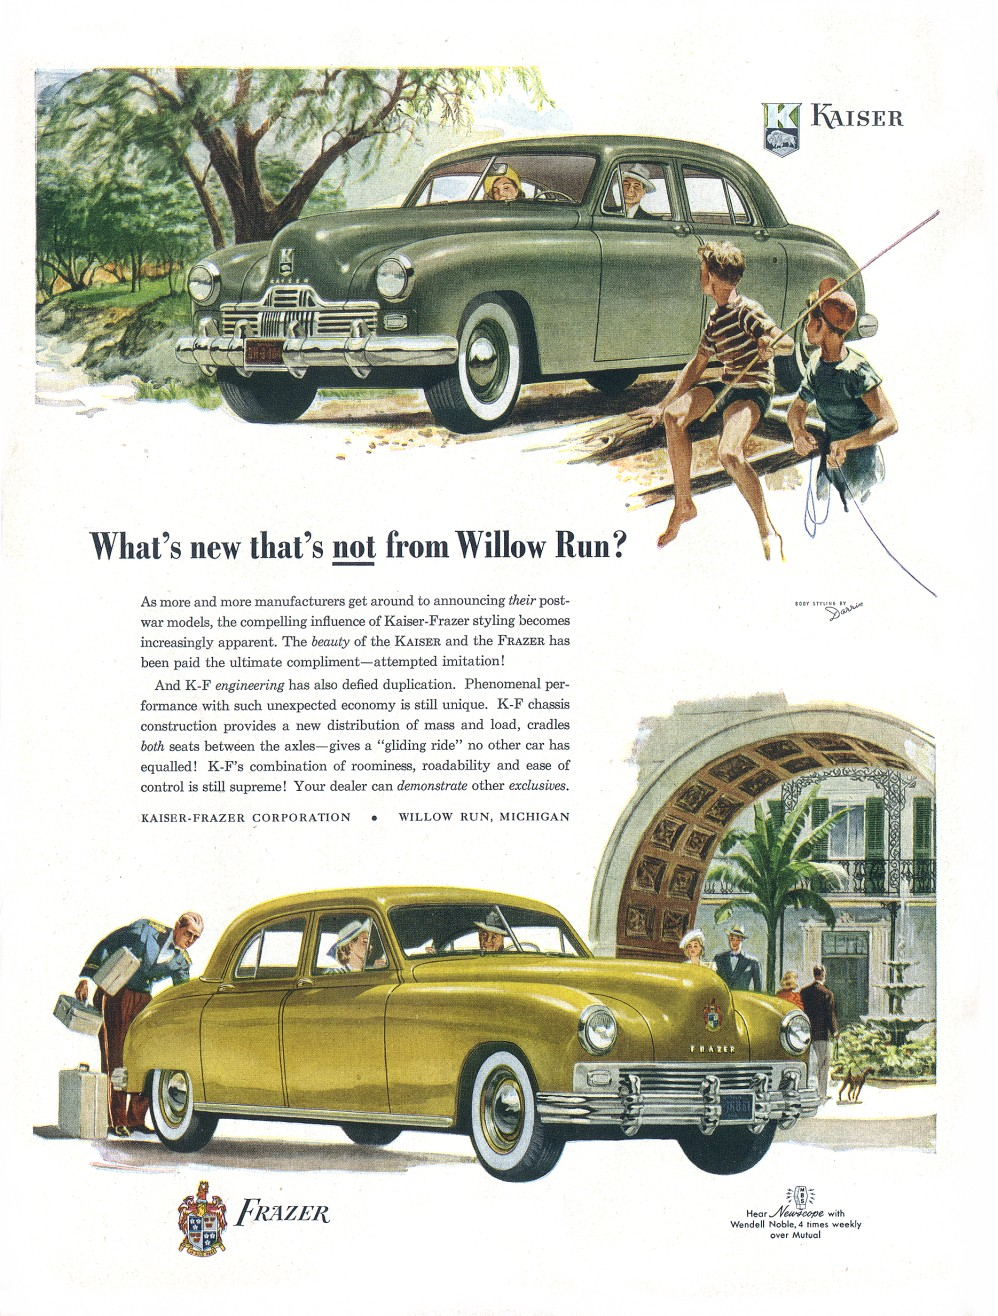 A Winter War Time Romance 2 likewise 1947 20International 20Truck 20Ad 01 as well Ford As An Advertisement Legend 61 Vintage Ads additionally Vintage Cars Chevrolet Brochures 1947 Sc 64 likewise Ferrari Enzo Black And White. on 1947 car ads